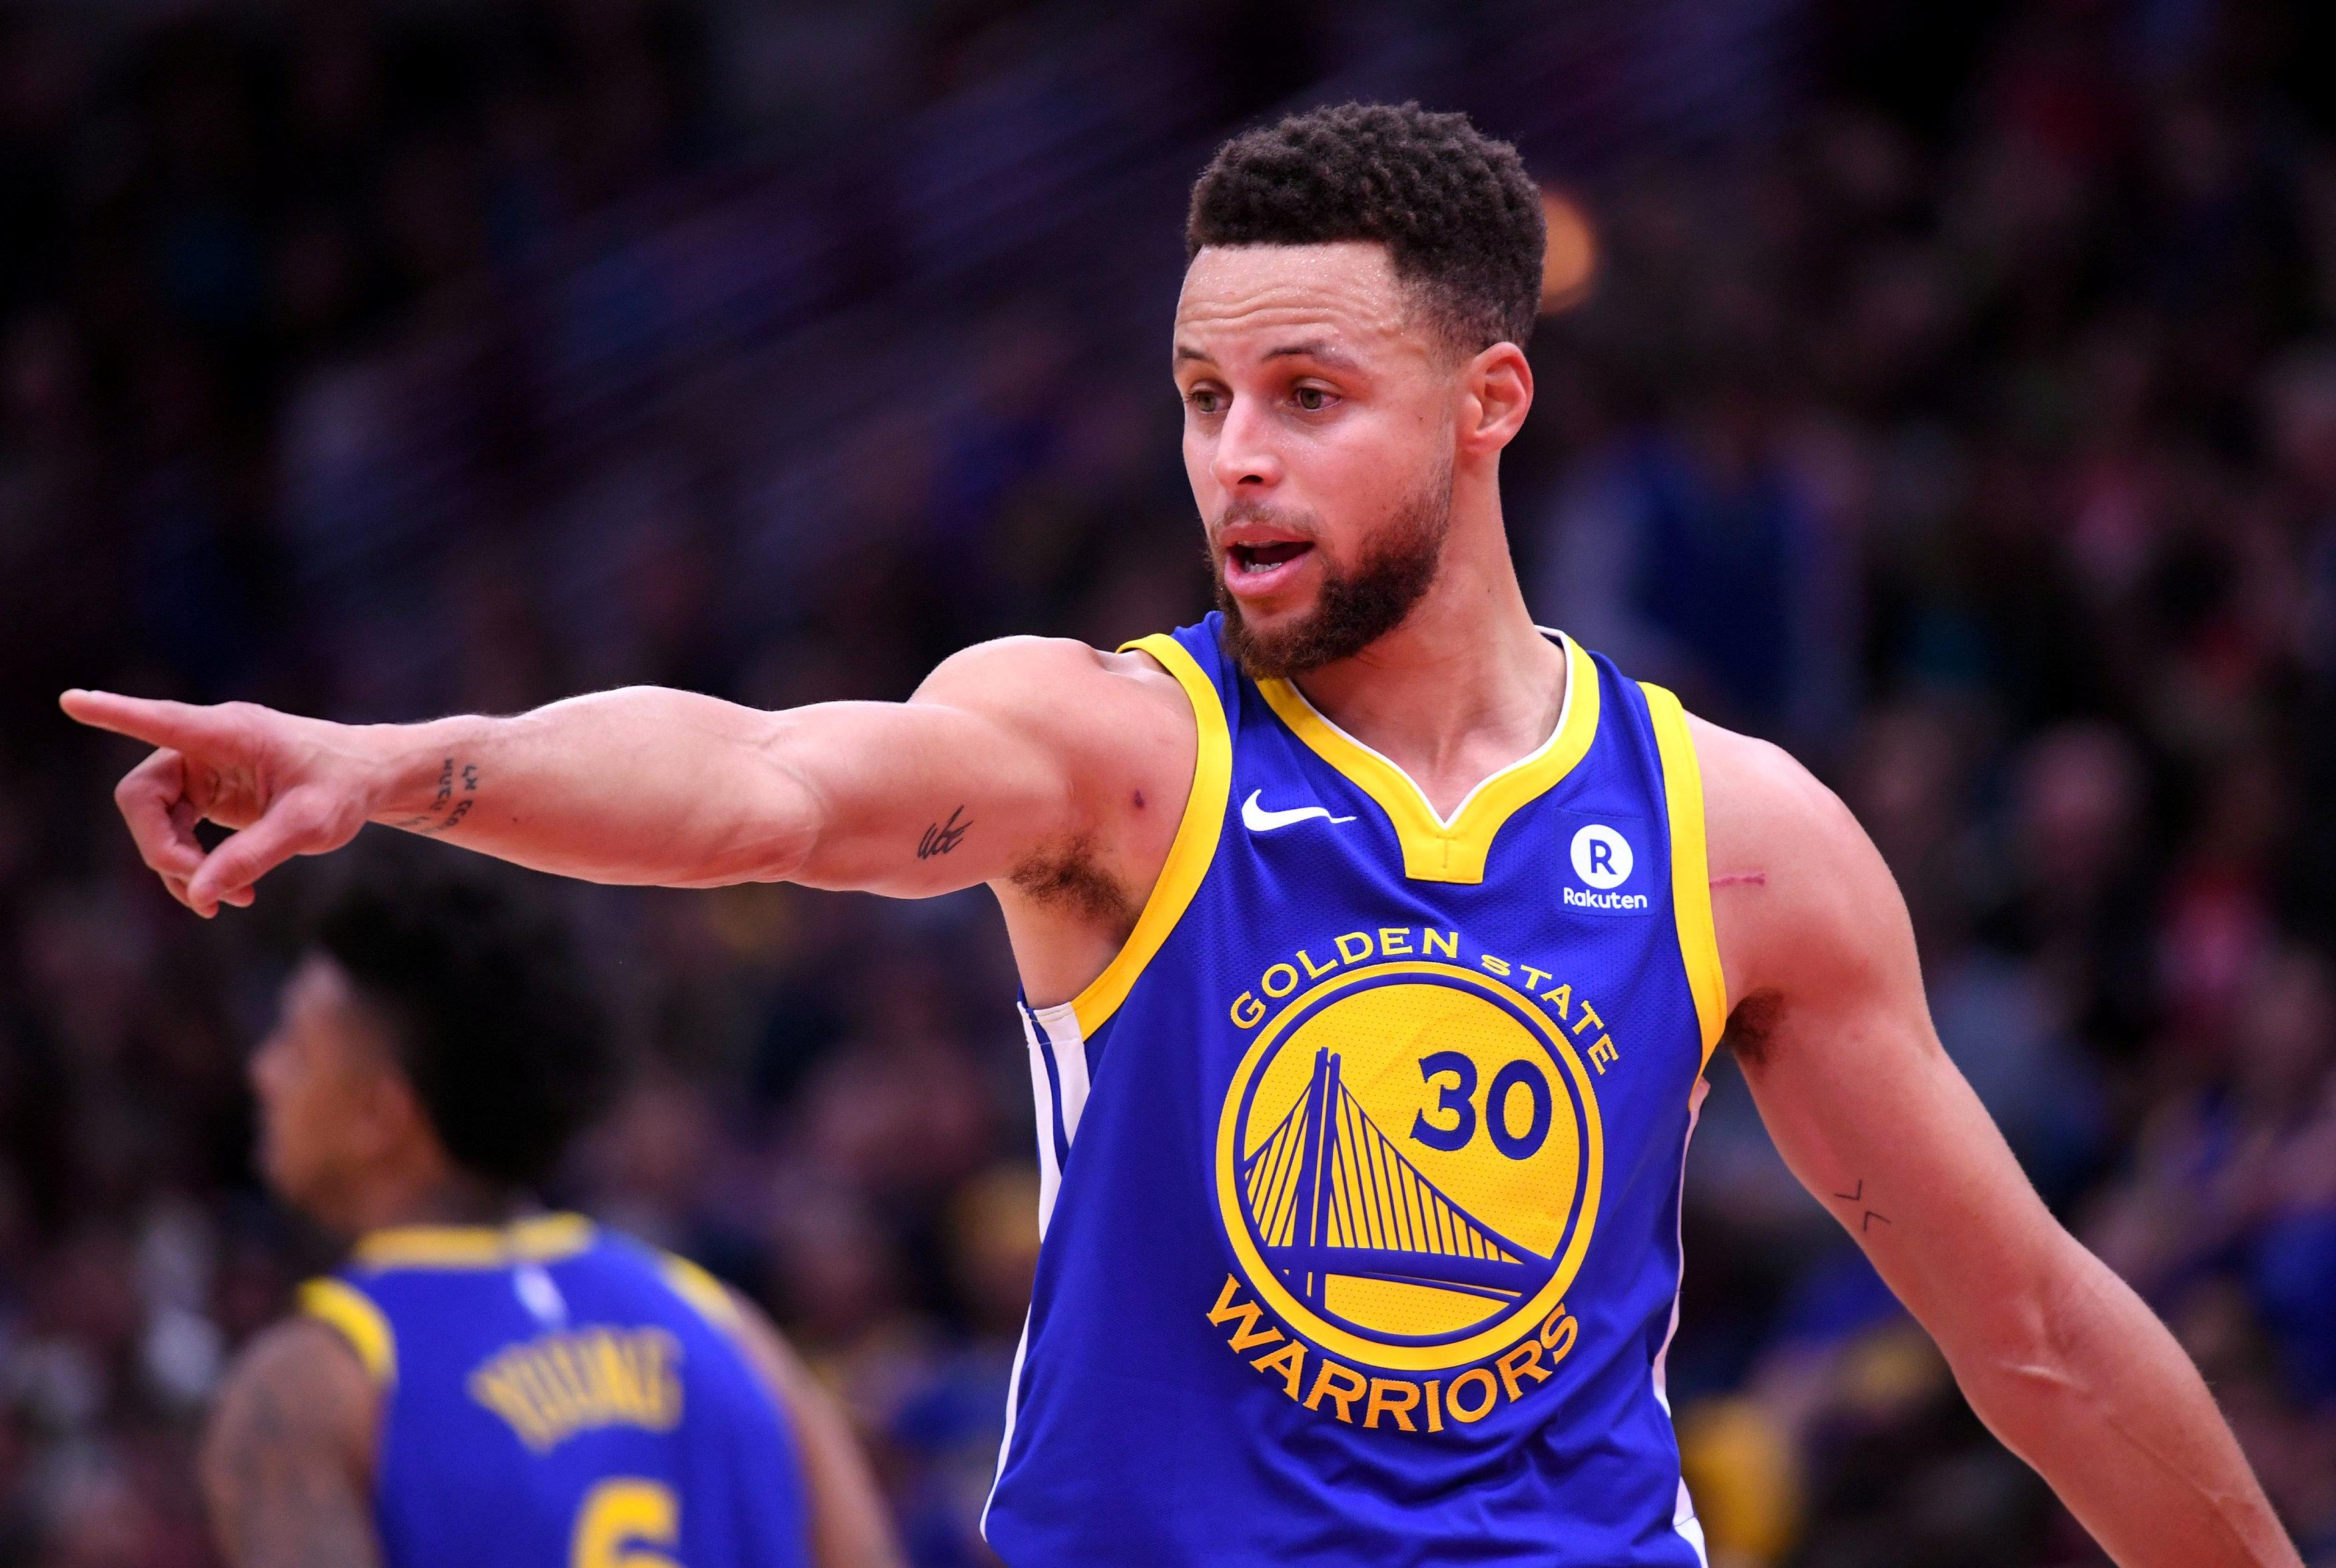 Golden State Warriors guard Stephen Curry, reacts during the first half against the Chicago Bulls at the United Center in Chicago, Illinois, U.S., January 17, 2018.   Mandatory Credit: Mike DiNovo-USA TODAY Sports